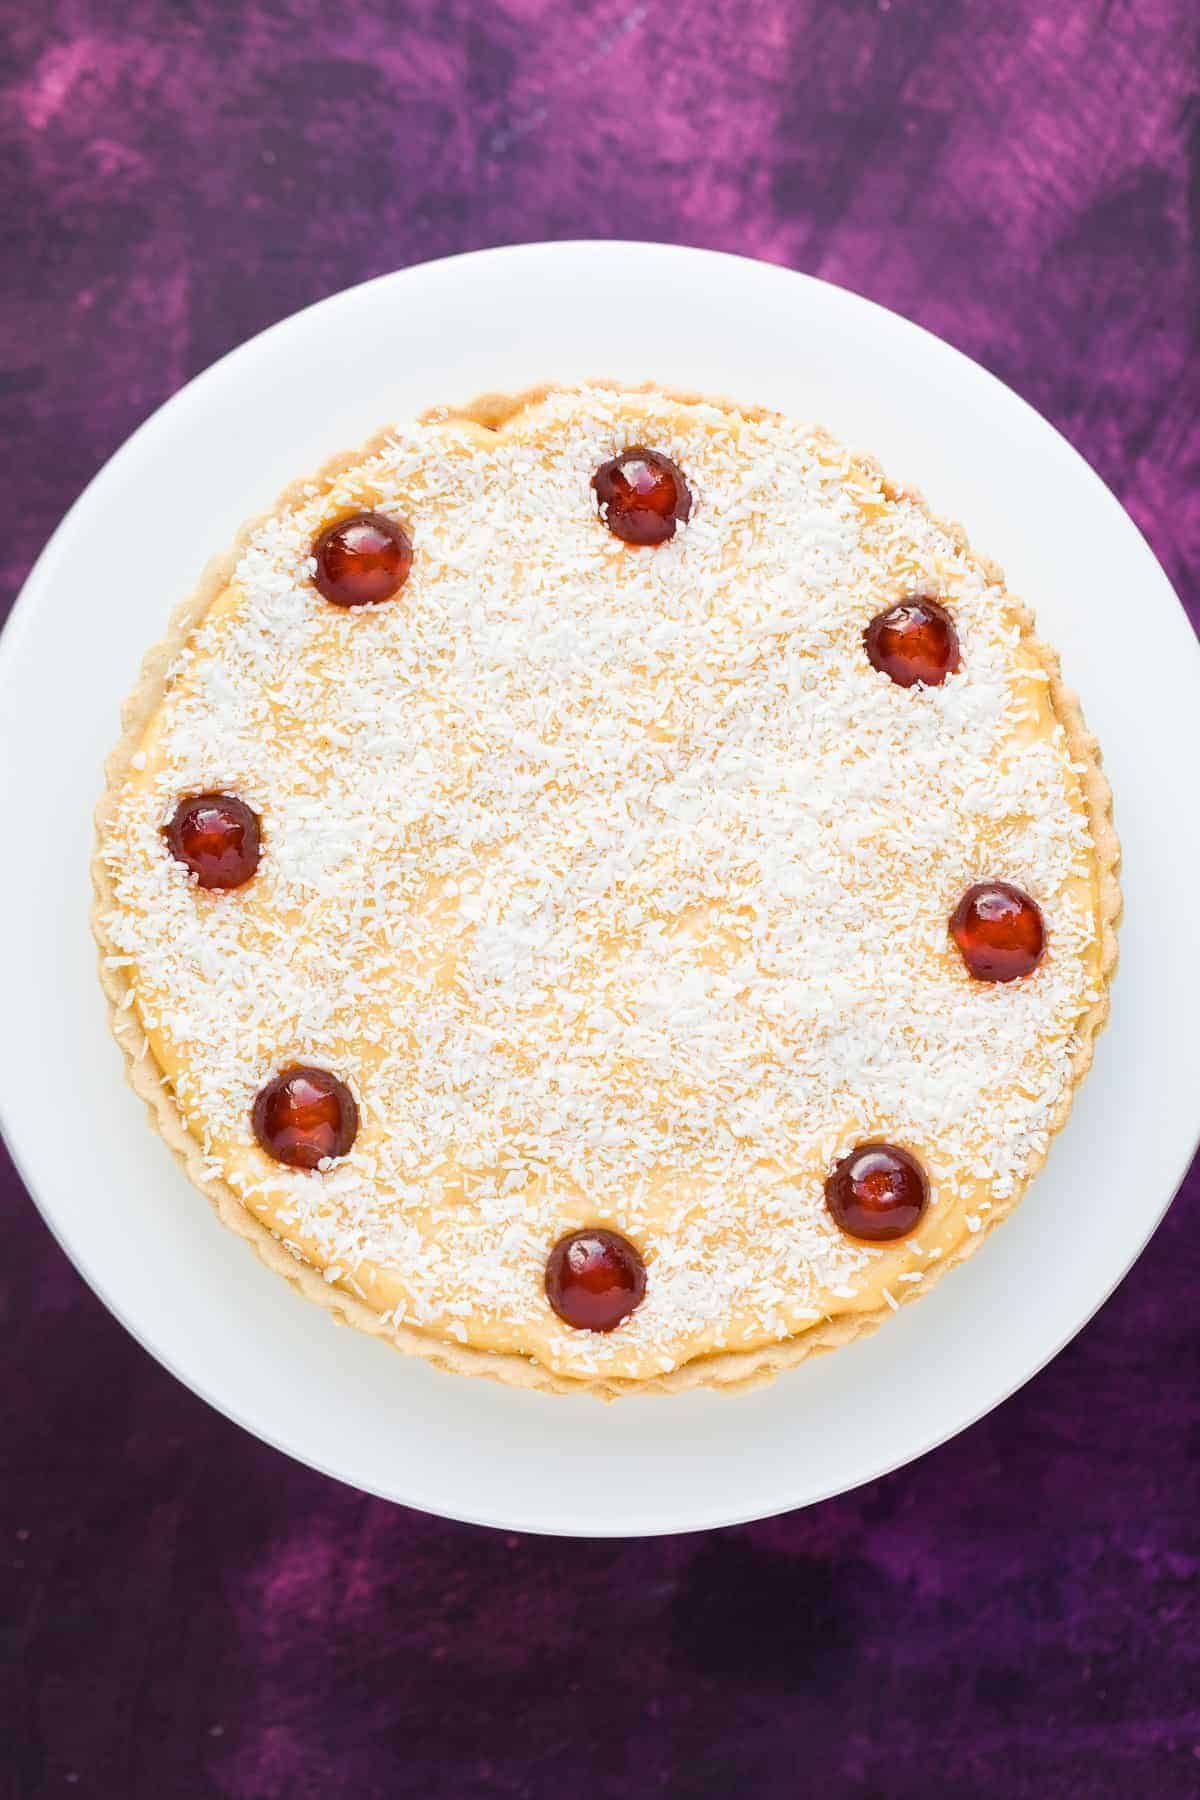 A Manchester tart with sweet pastry, raspberry jam, sliced banana, homemade custard and topped with desiccated coconut and maraschino cherries.